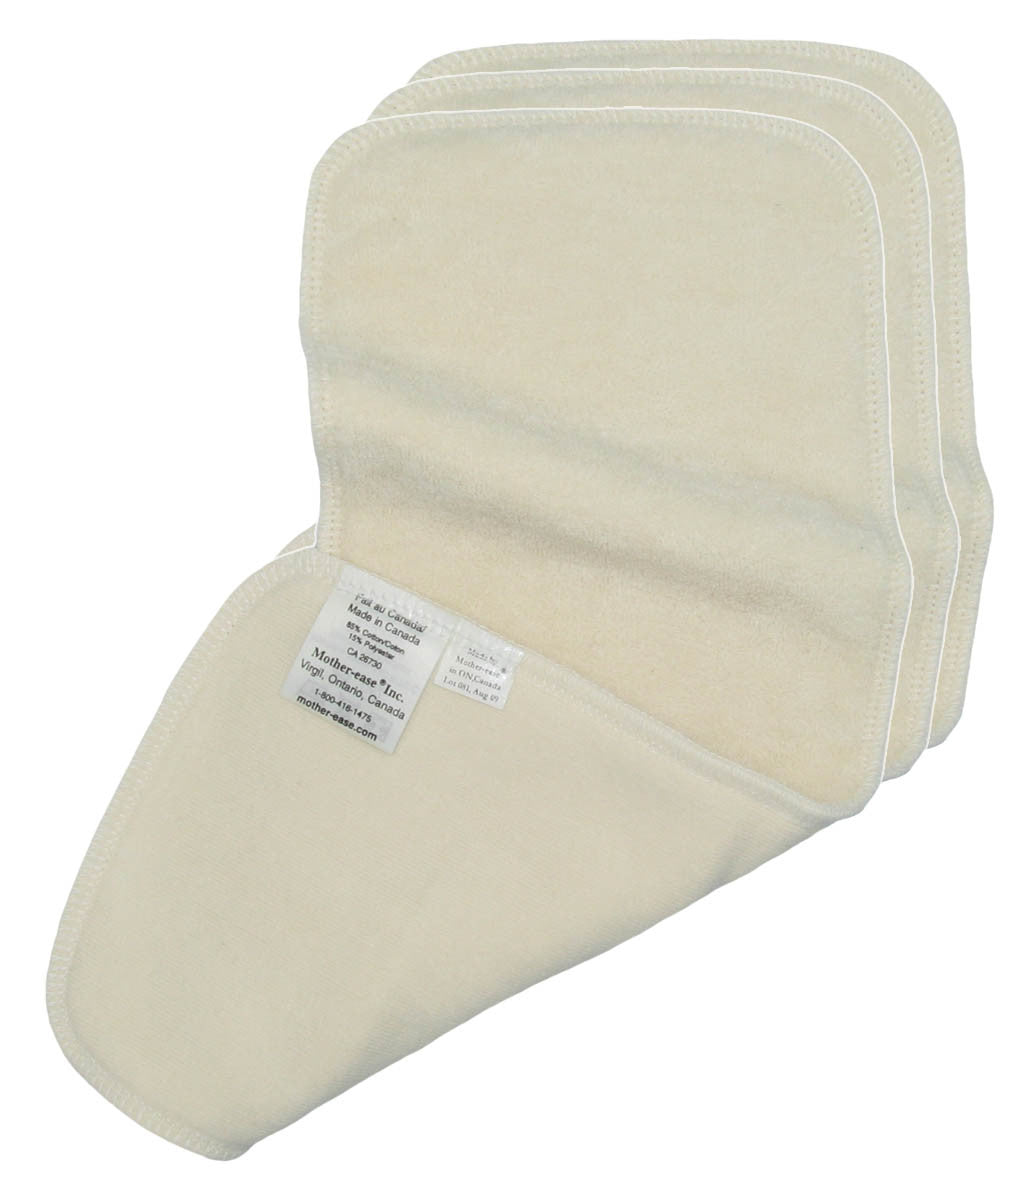 Sandys Absorbent Liners - Unbleached Cotton